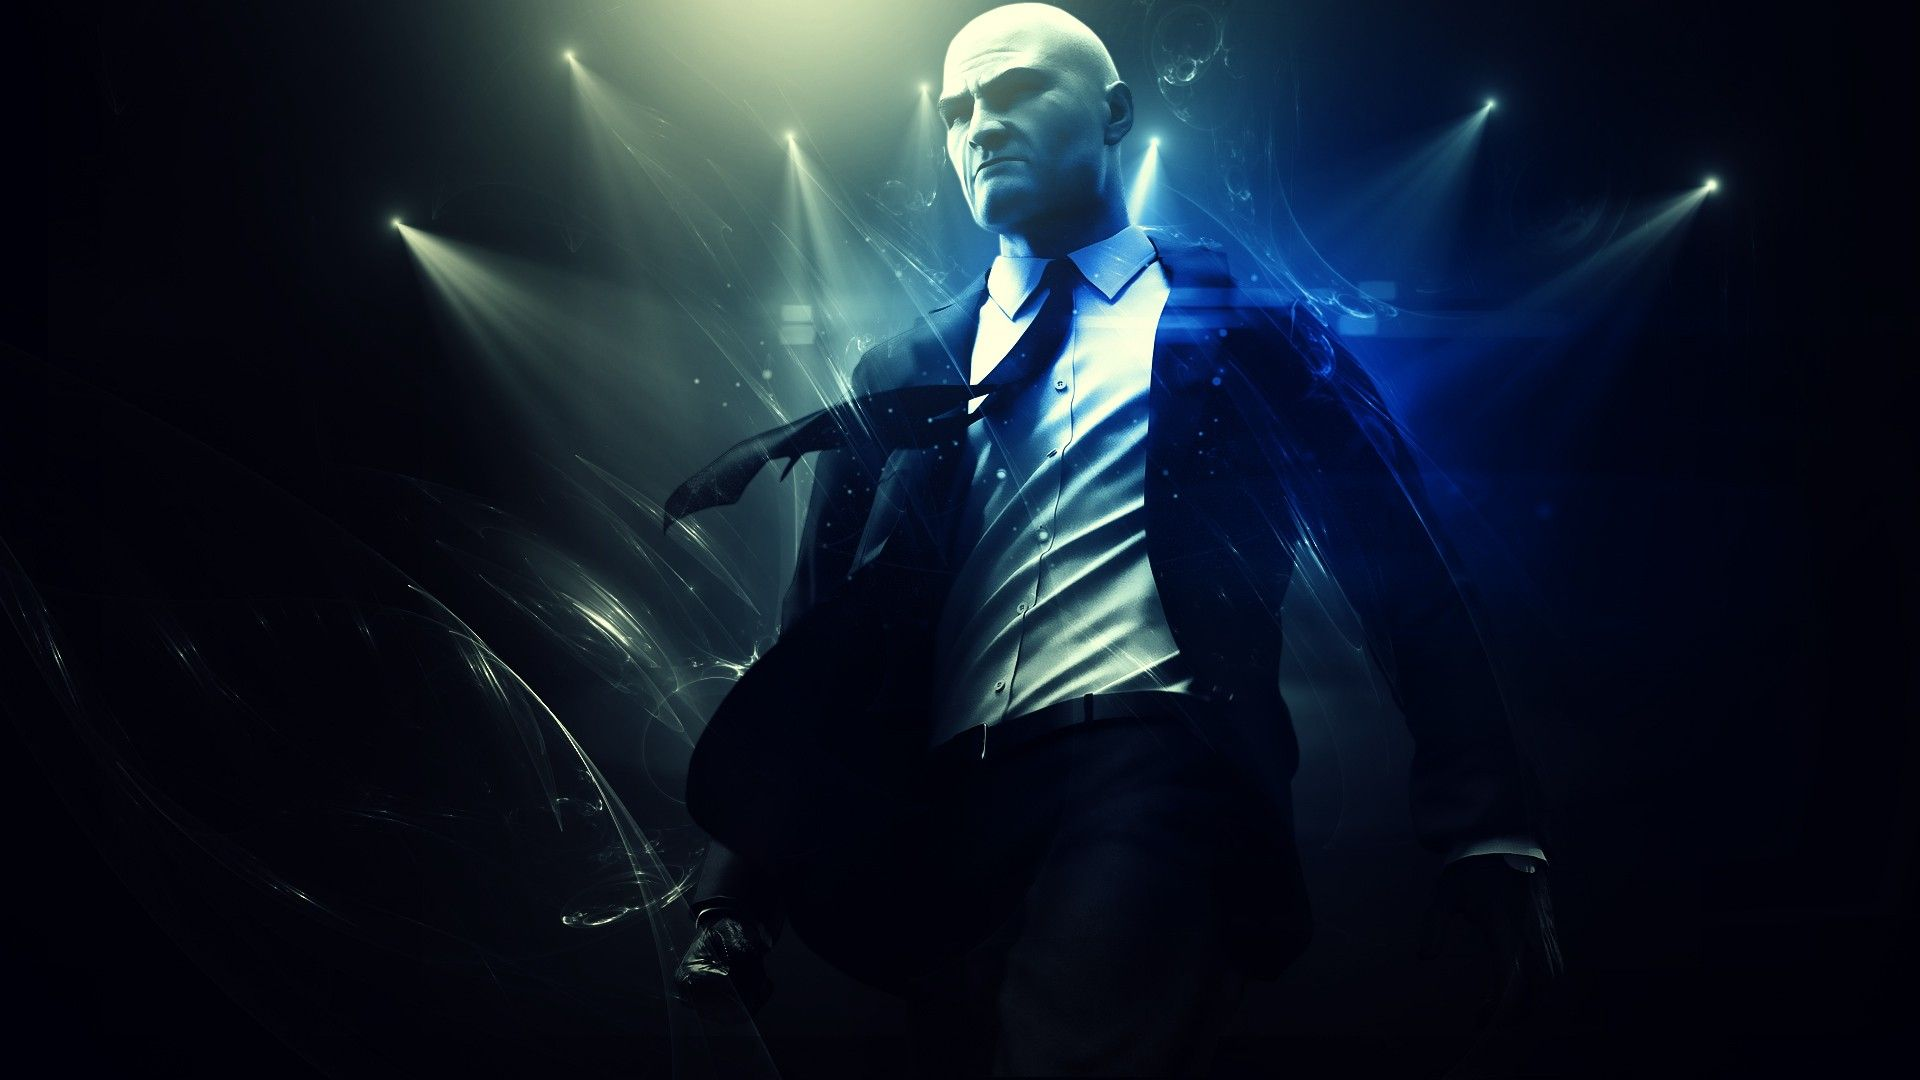 Wallpapers Hitman Hitman Absolution Agent 47 Hitman Hitman Agent 47 Agent 47